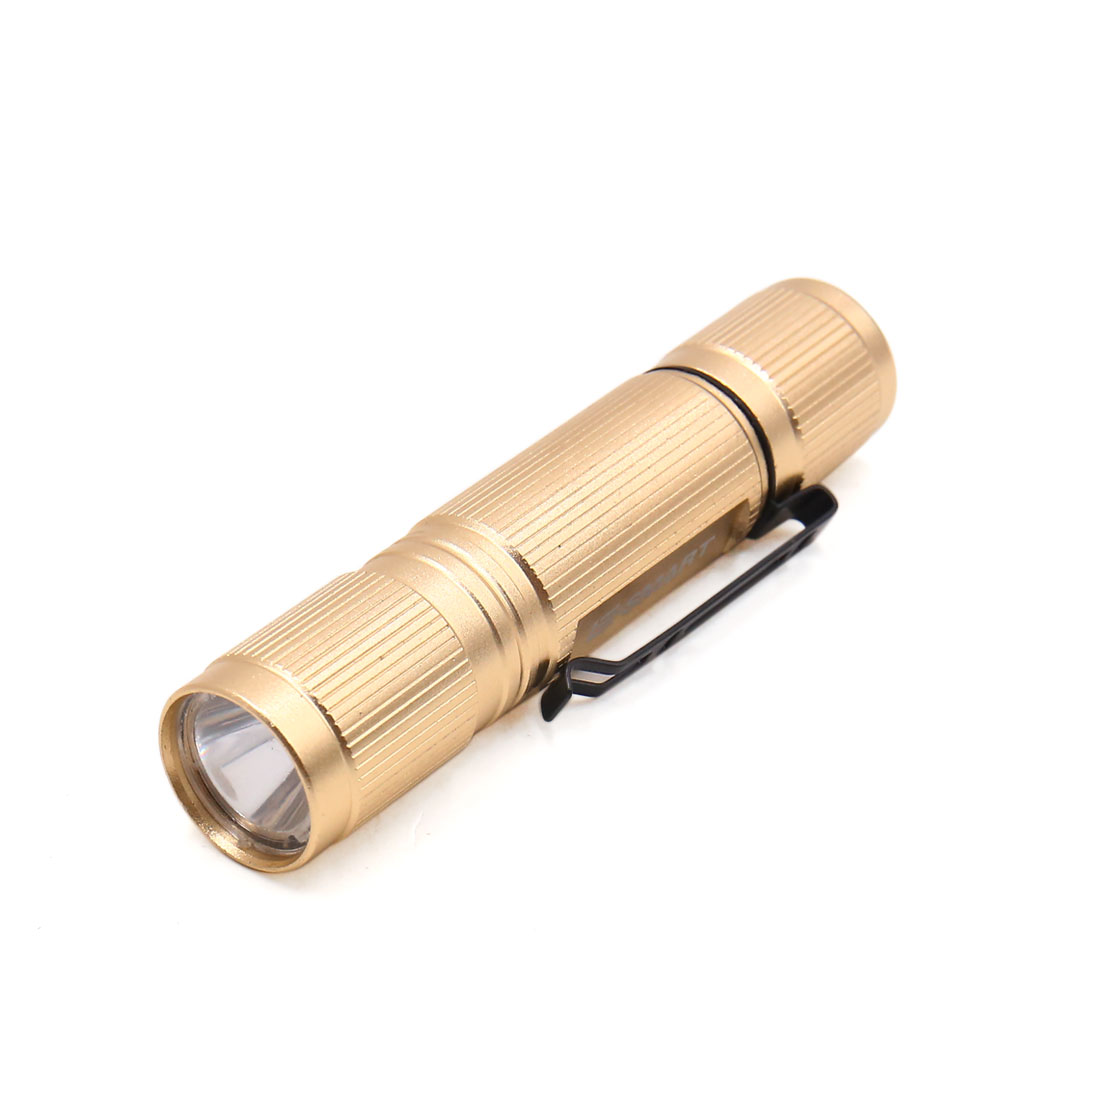 Mini Portable Gold Tone Metal Shell White LED Torch Light for Outdoor Sports by Unique-Bargains